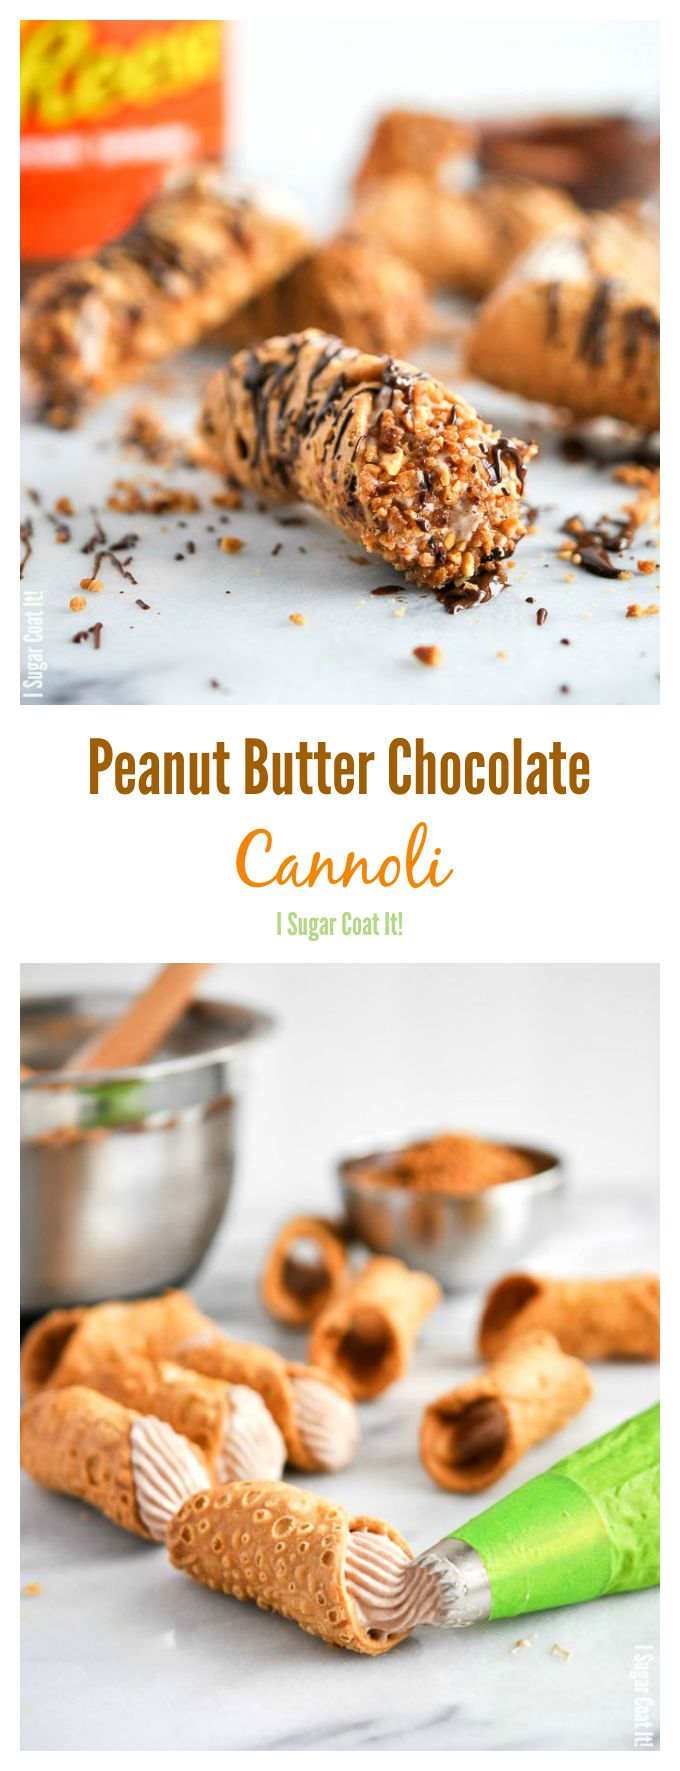 Peanut Butter Chocolate Whipped Coconut Cannoli {#DoYouSpoon} - I ...